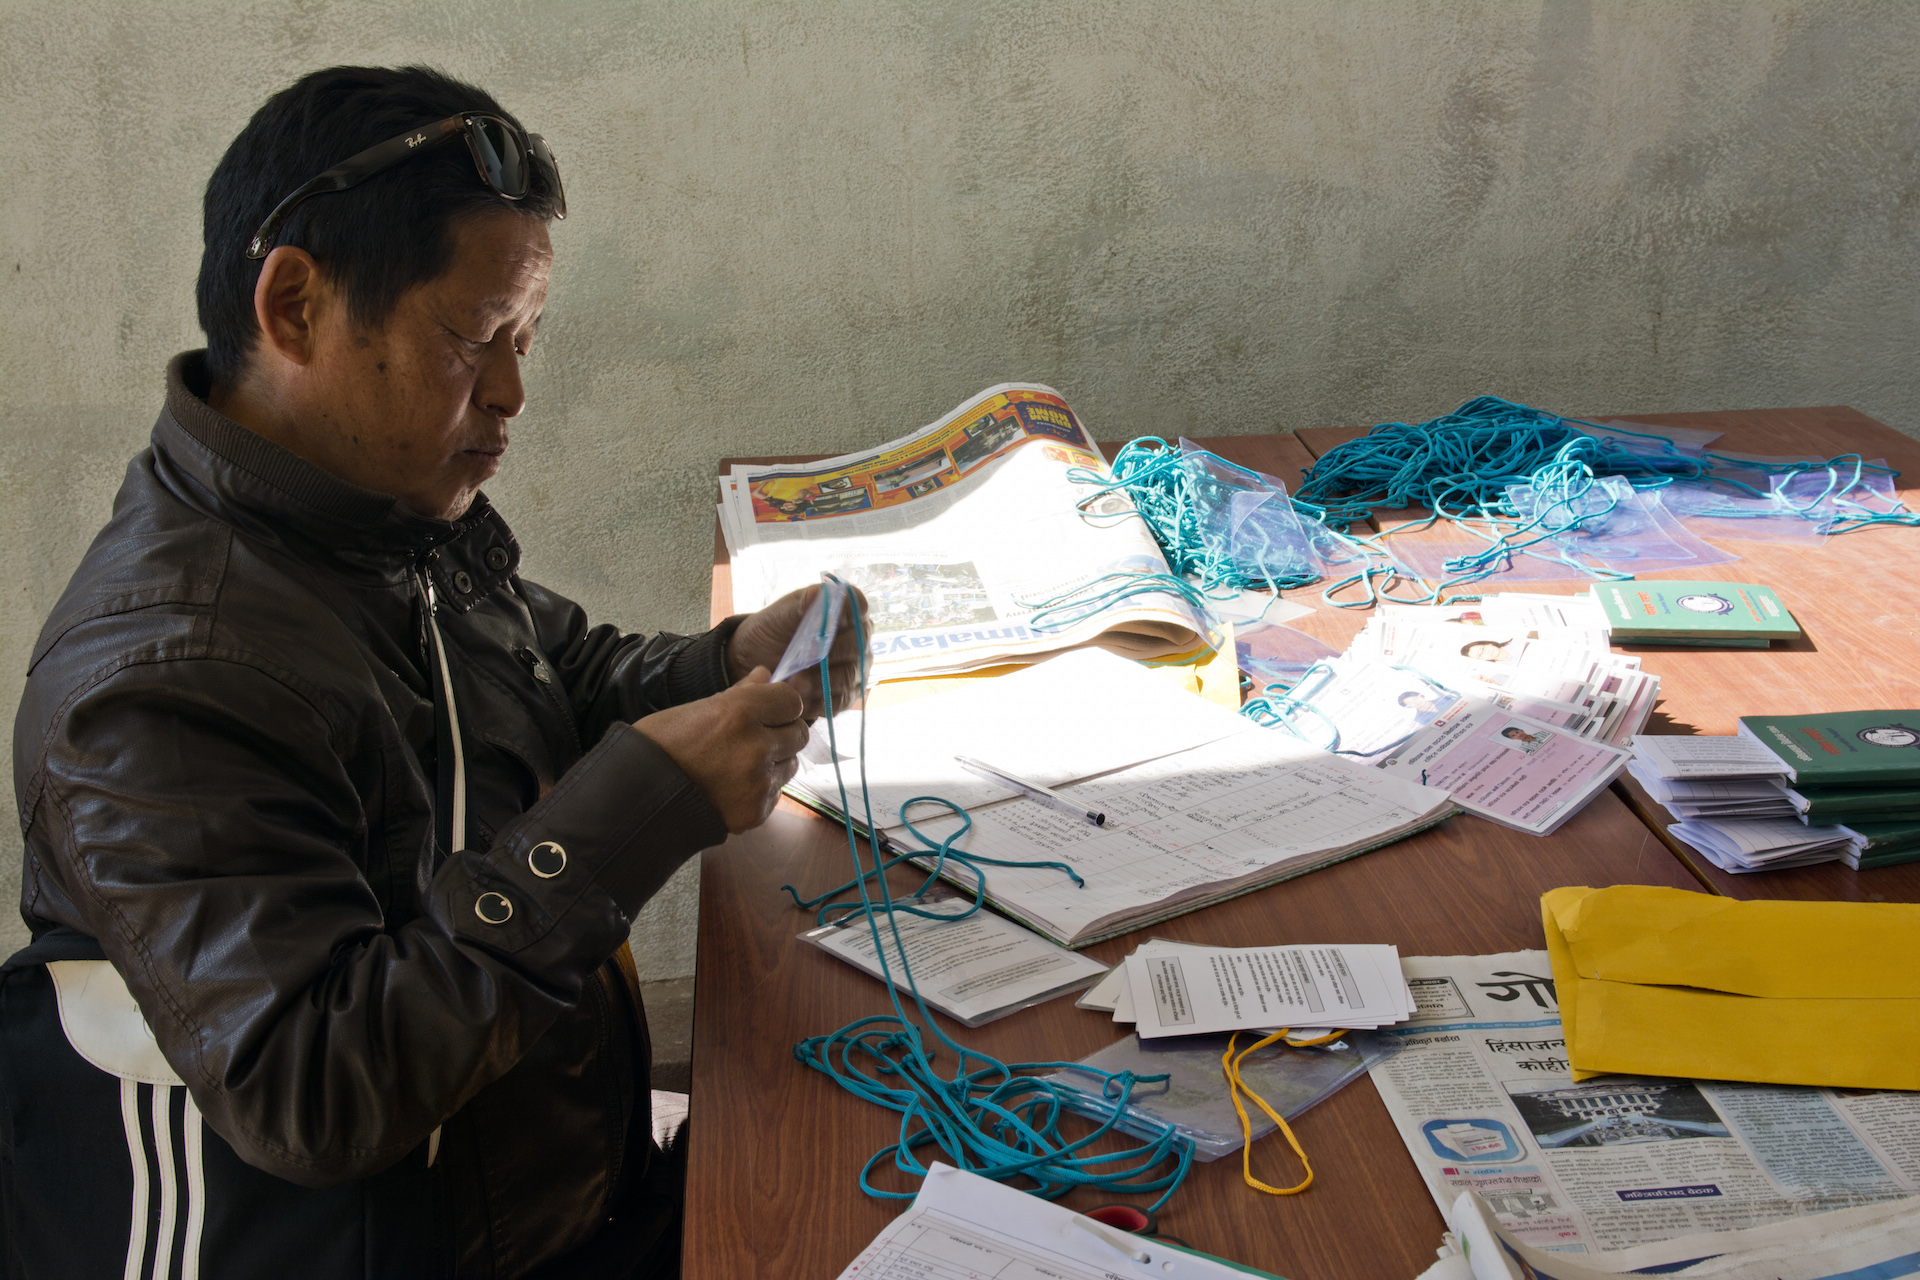 At the National Election Observation Committee, a domestic election observation organization based in Kathmandu, a worker hands out observer credentials.